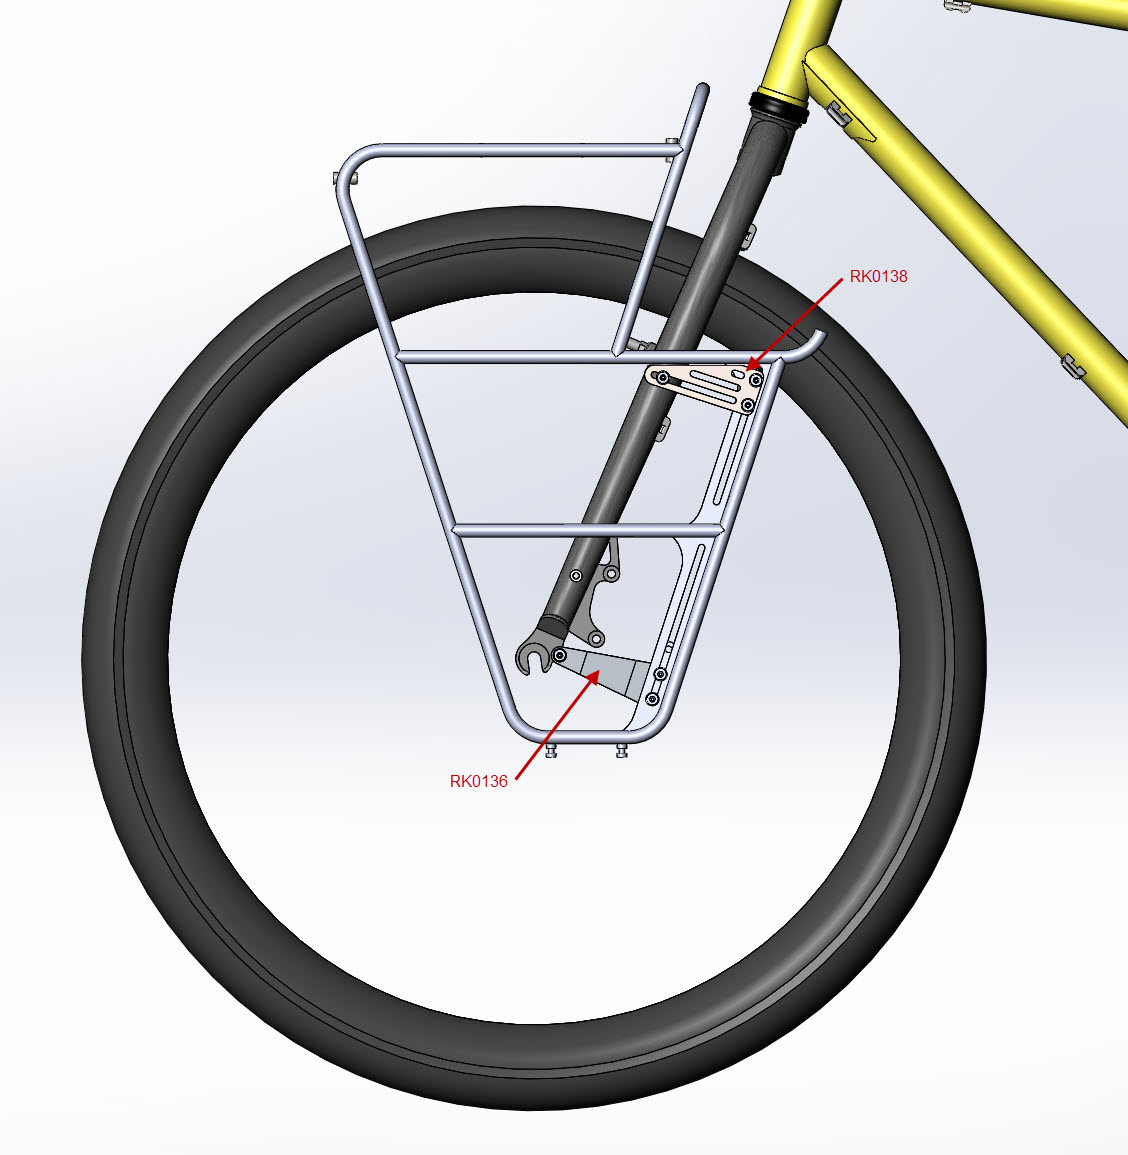 The Surly Front Rack can be used on non-Surly bikes but the hardware and plates are designed to work best with Surly bikes.  sc 1 st  Surly Bikes & Rack Plates Decoded | Blog | Surly Bikes